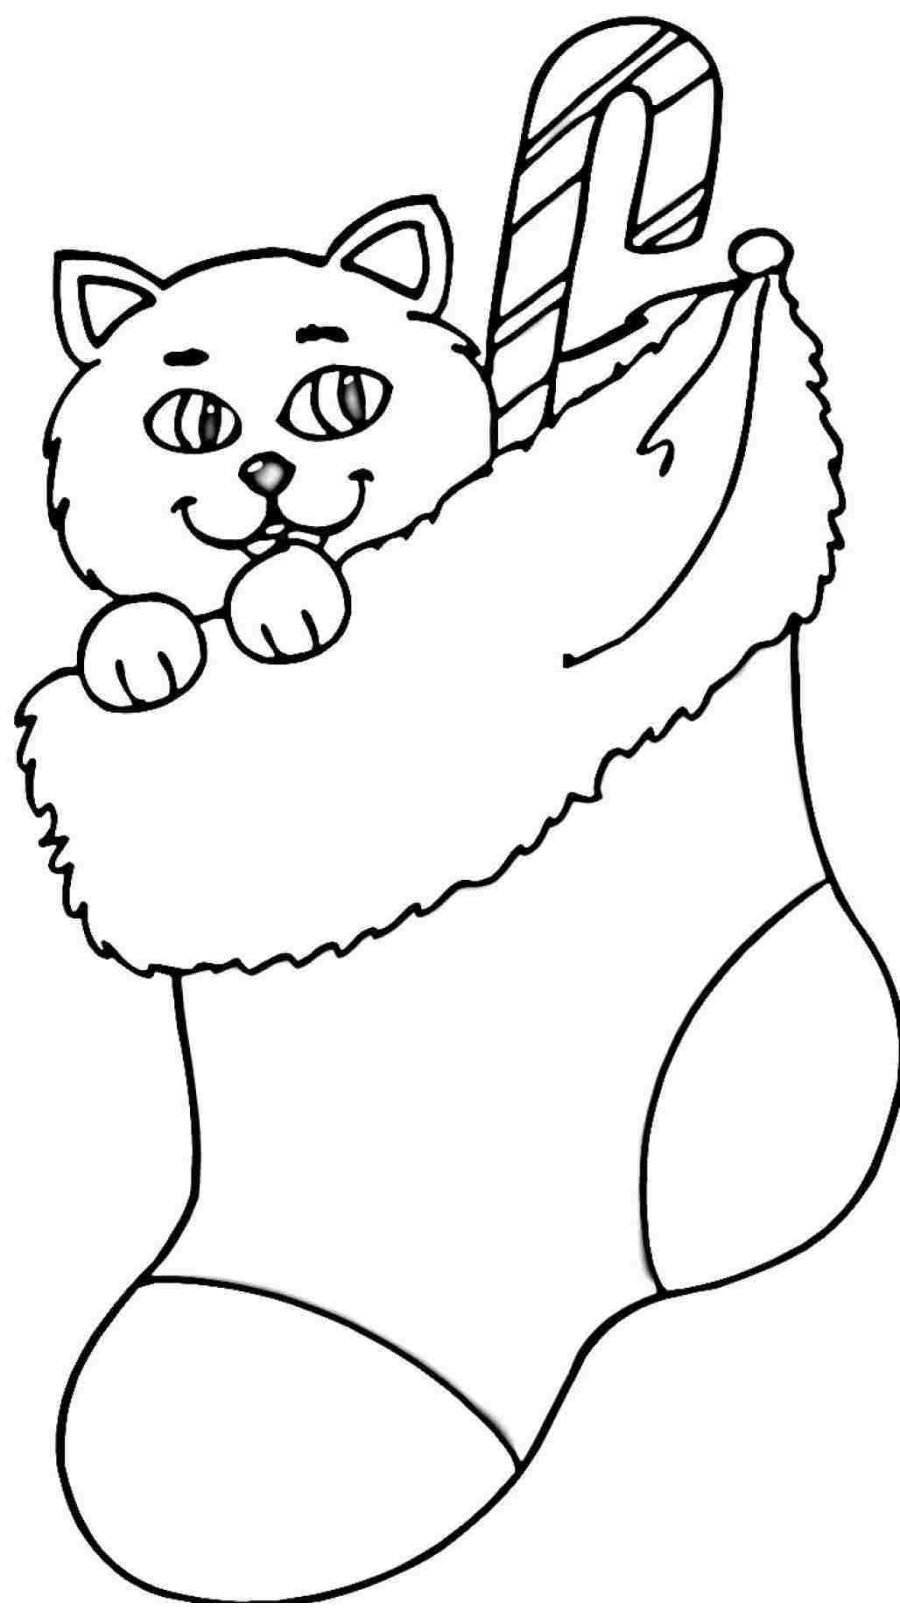 Coloring Pages Christmas Stocking - Coloring Home